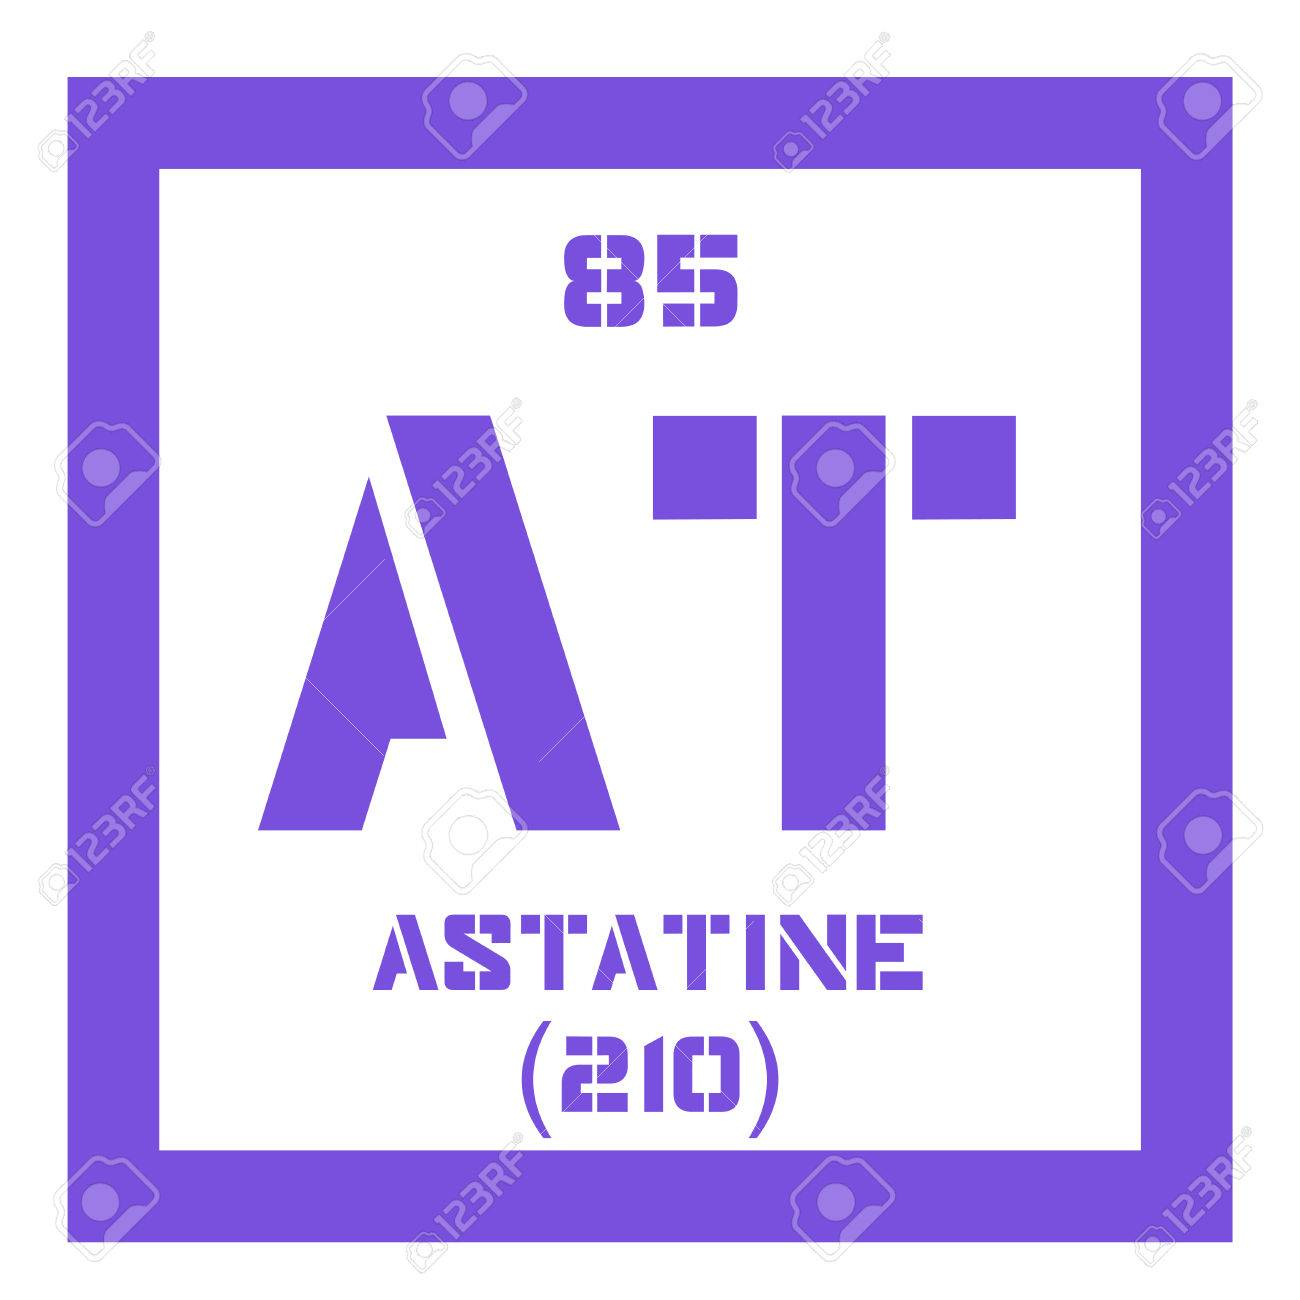 Astatine chemical element radioactive chemical element colored astatine chemical element radioactive chemical element colored icon with atomic number and atomic weight urtaz Image collections